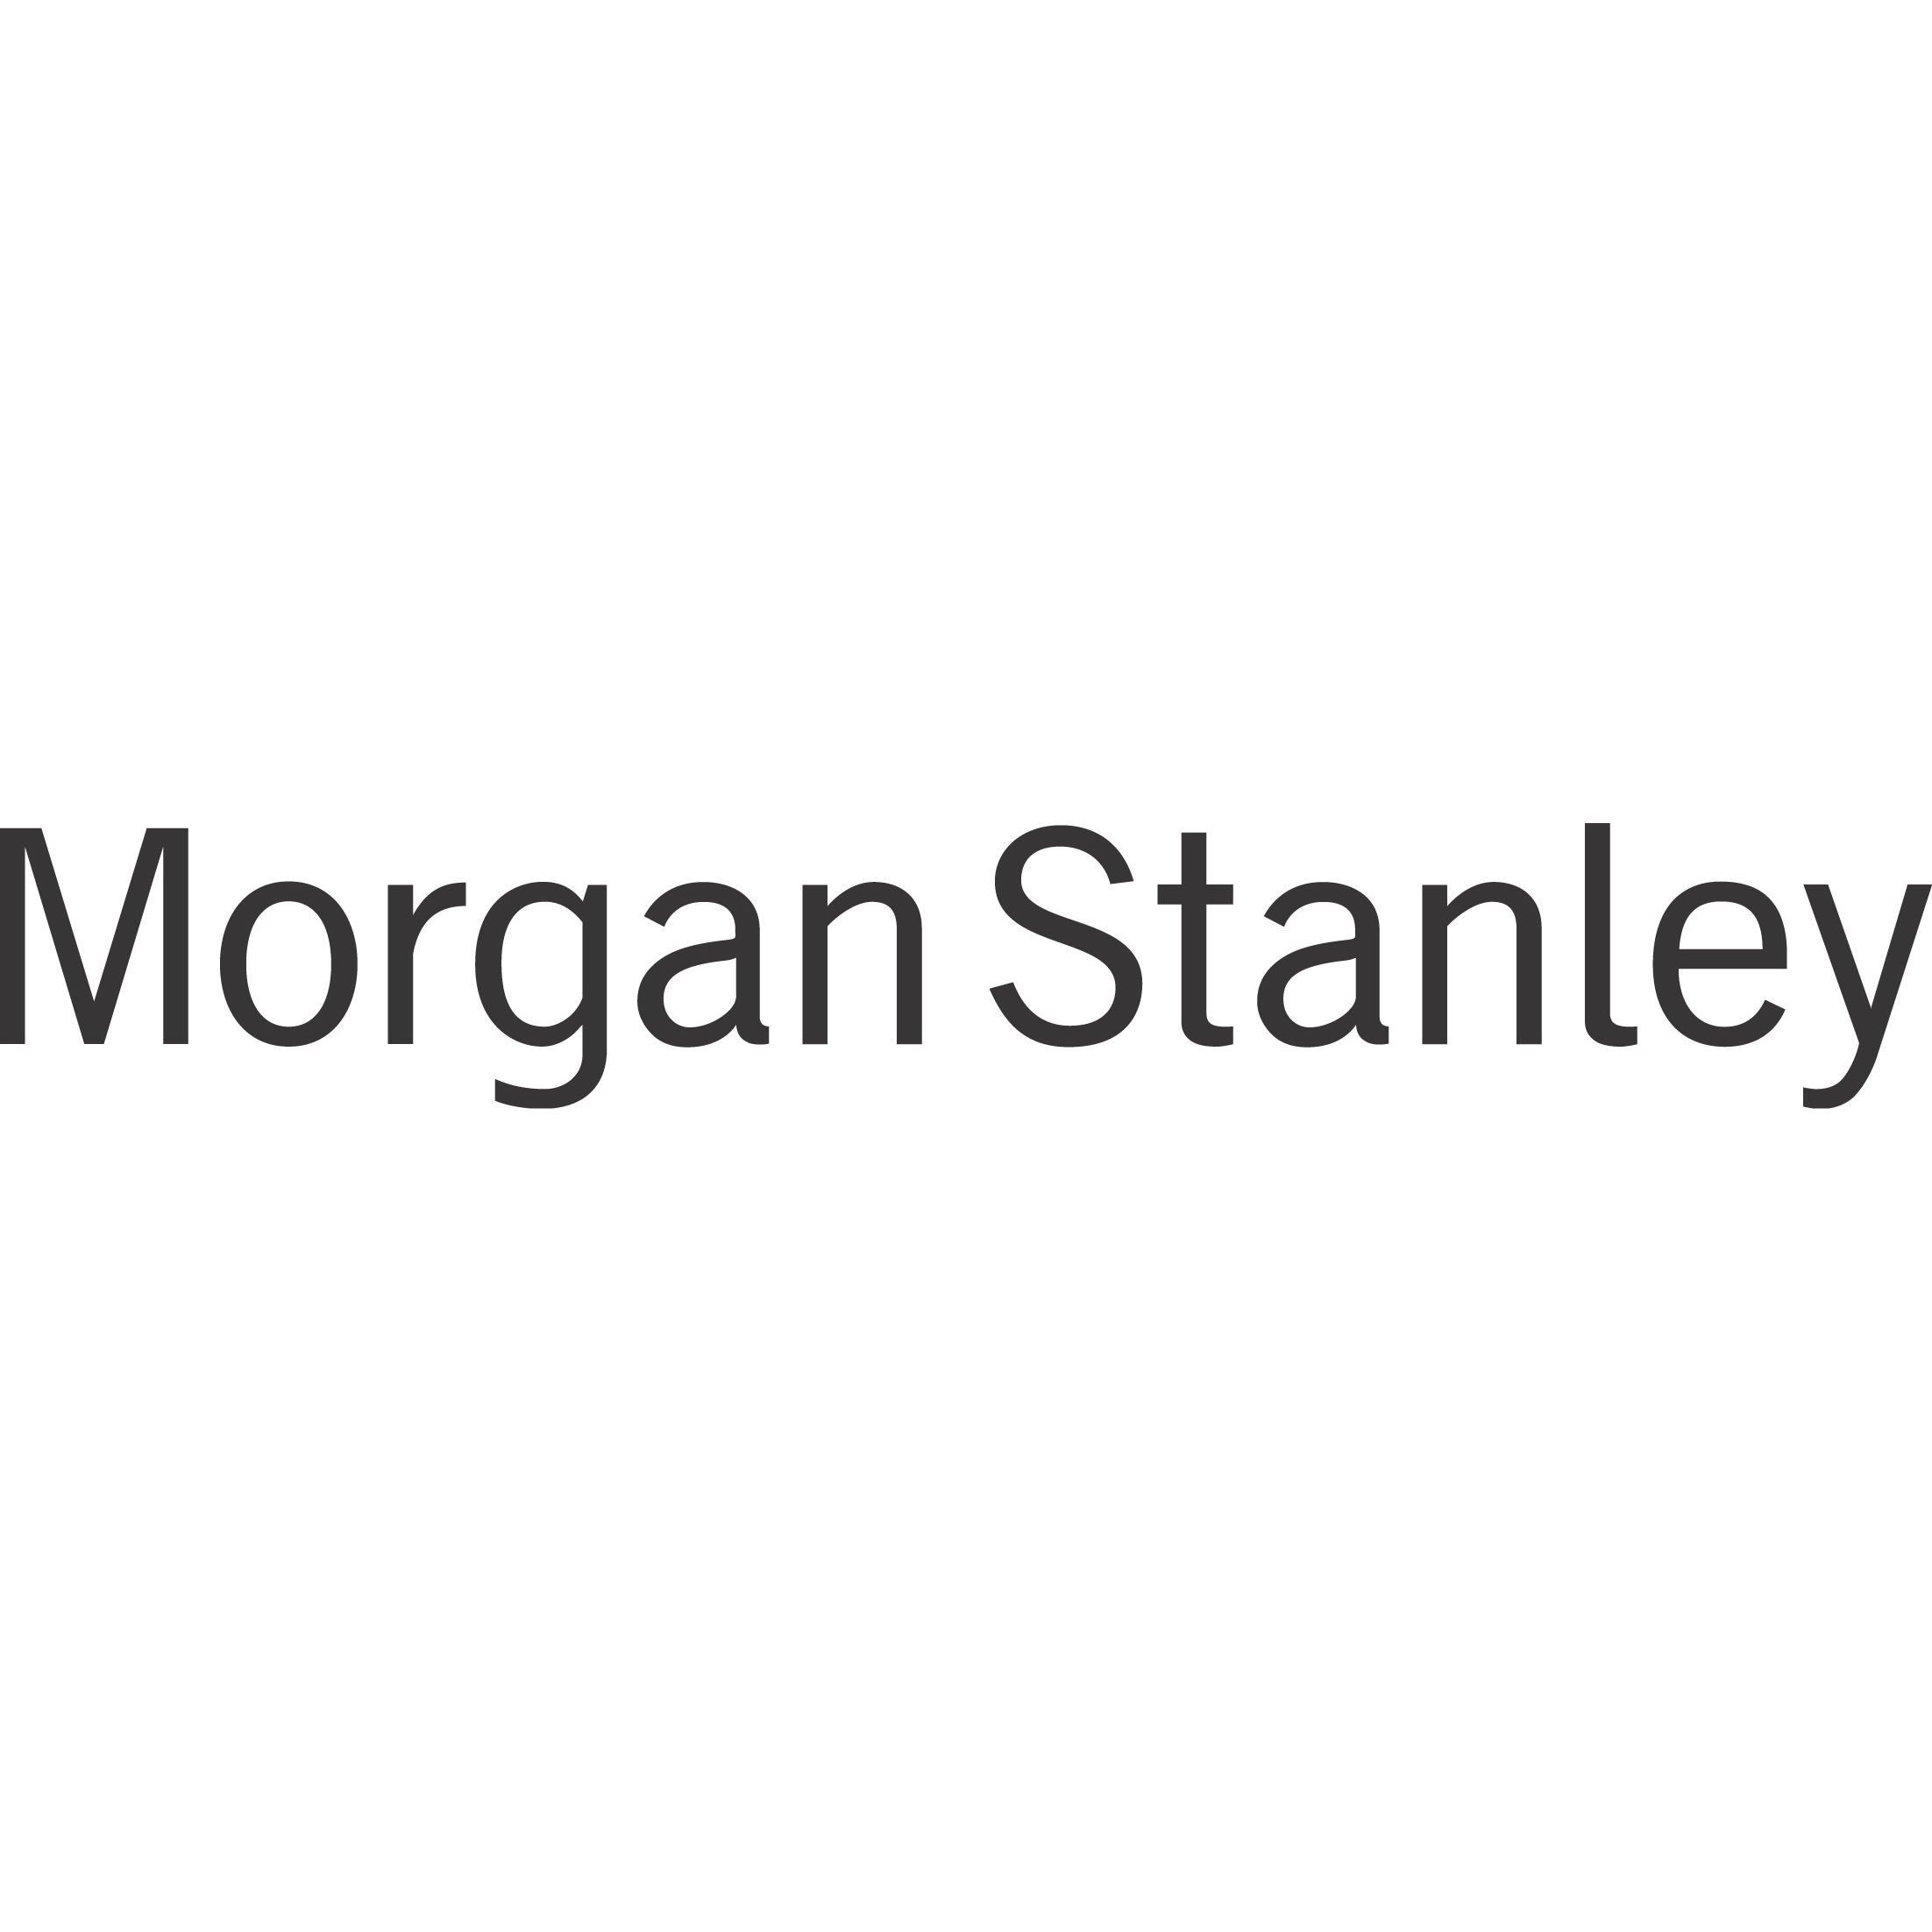 Michael Macintyre - Morgan Stanley | Financial Advisor in Alexandria,Virginia